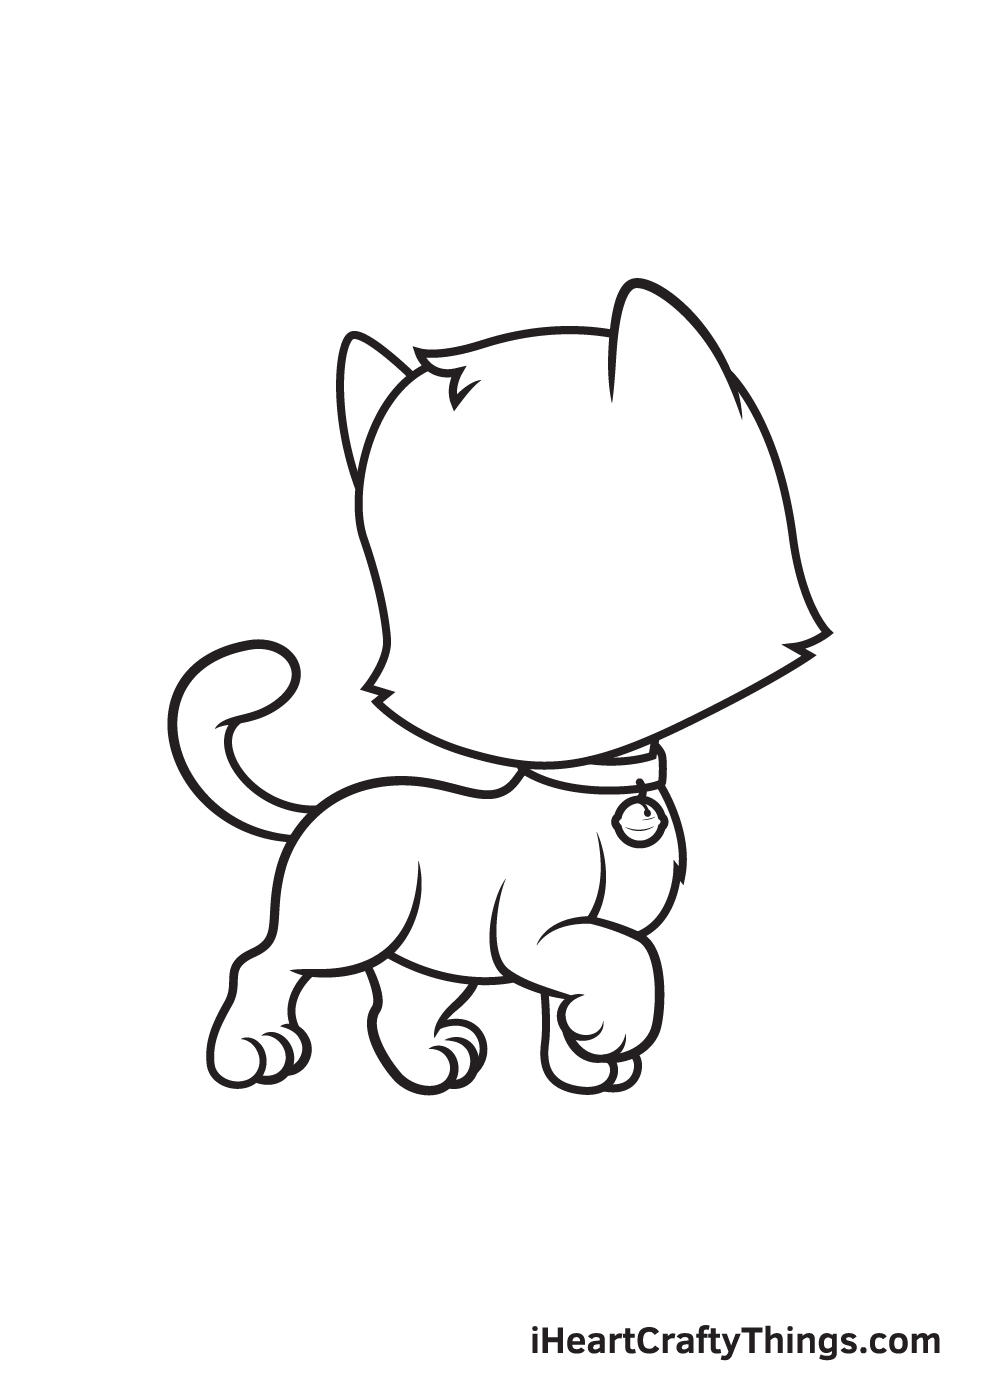 cat drawing – step 8